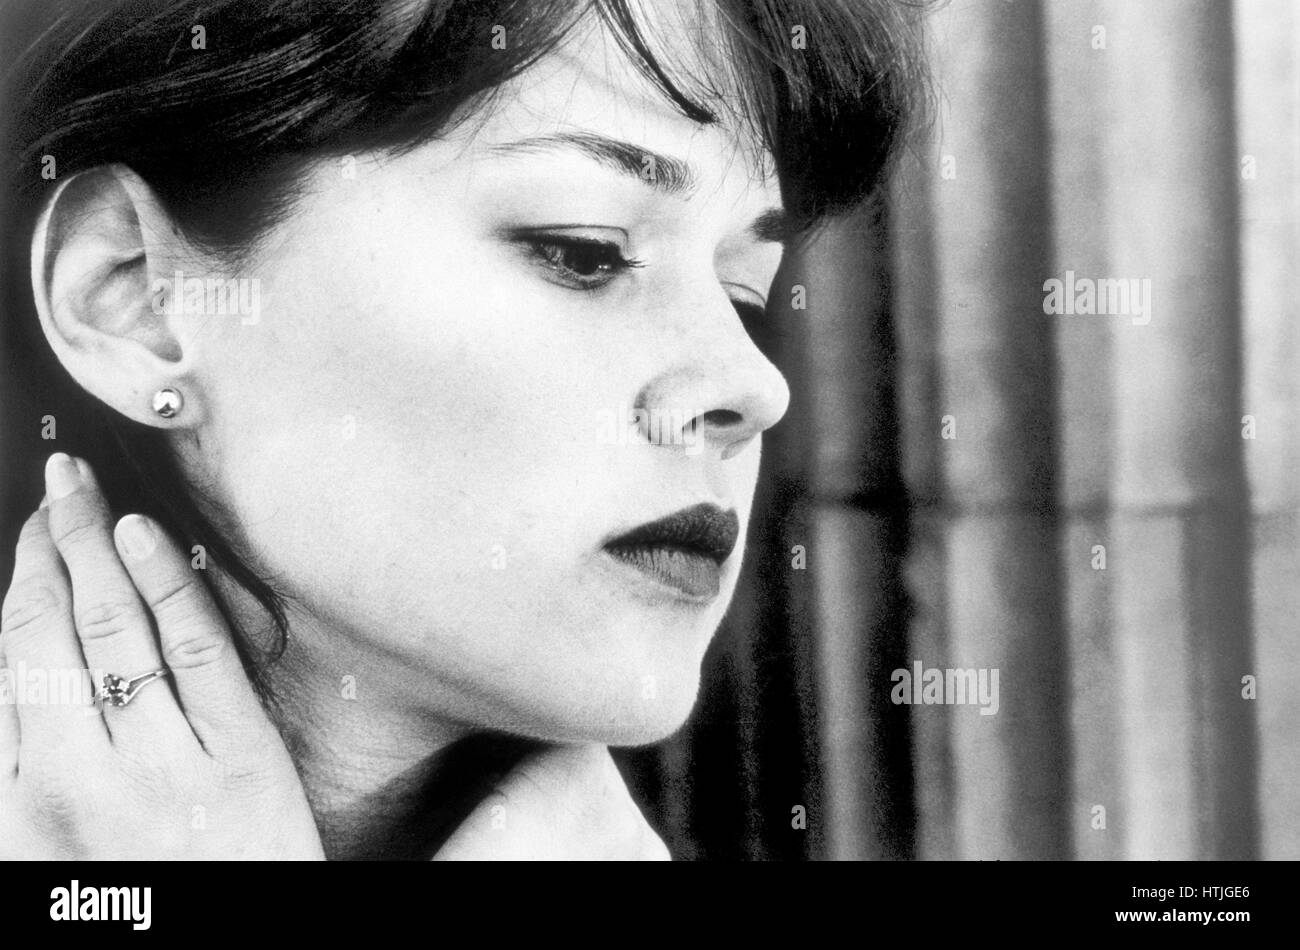 Woman with pensive expression - Stock Image